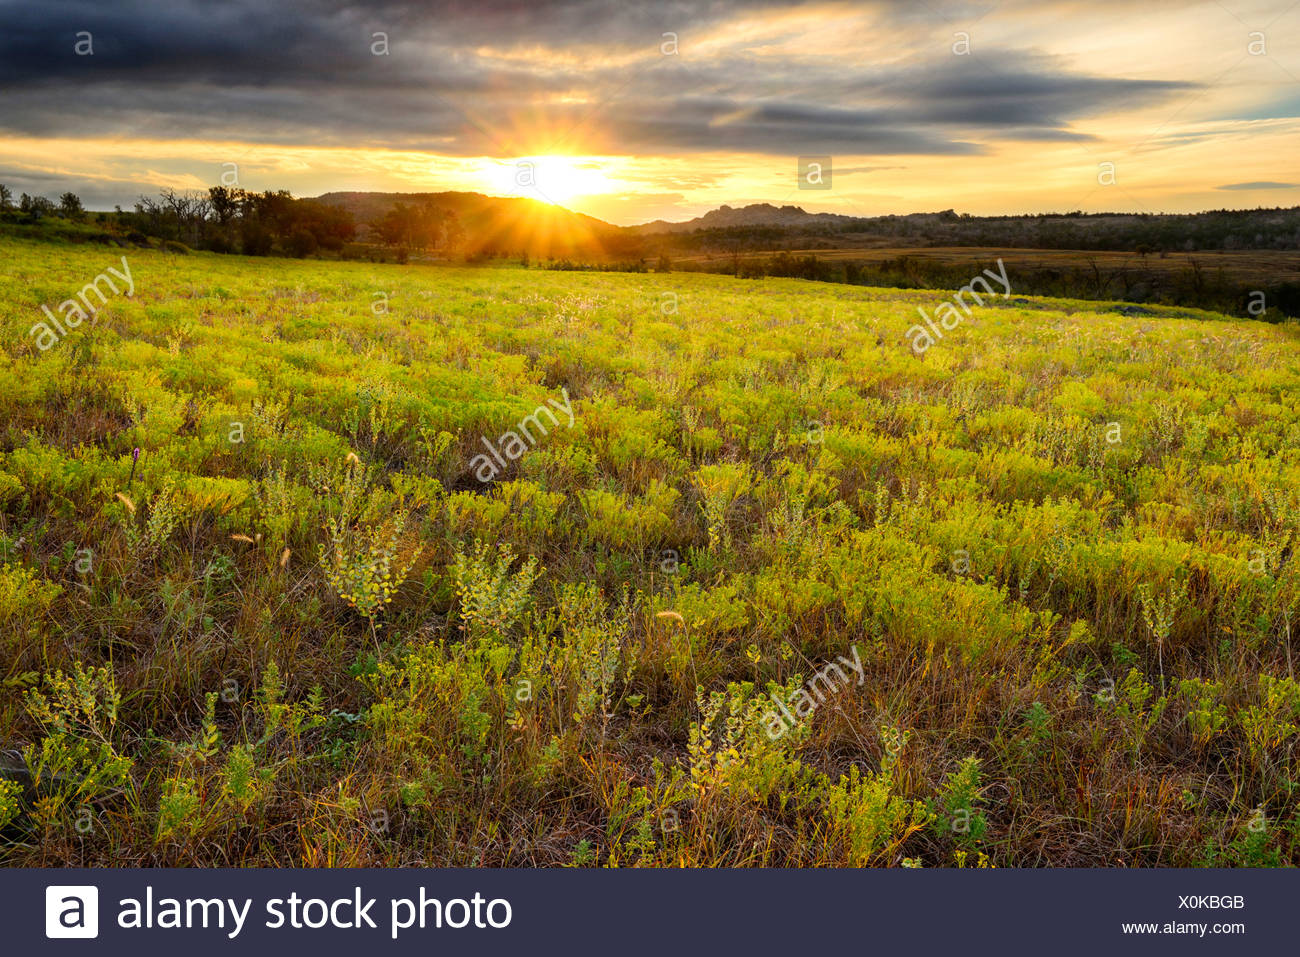 USA, United States, America, North America, Oklahoma, Comanche, Wichita, mountains, refuge, nature, landscape, grass, grassland, Stock Photo